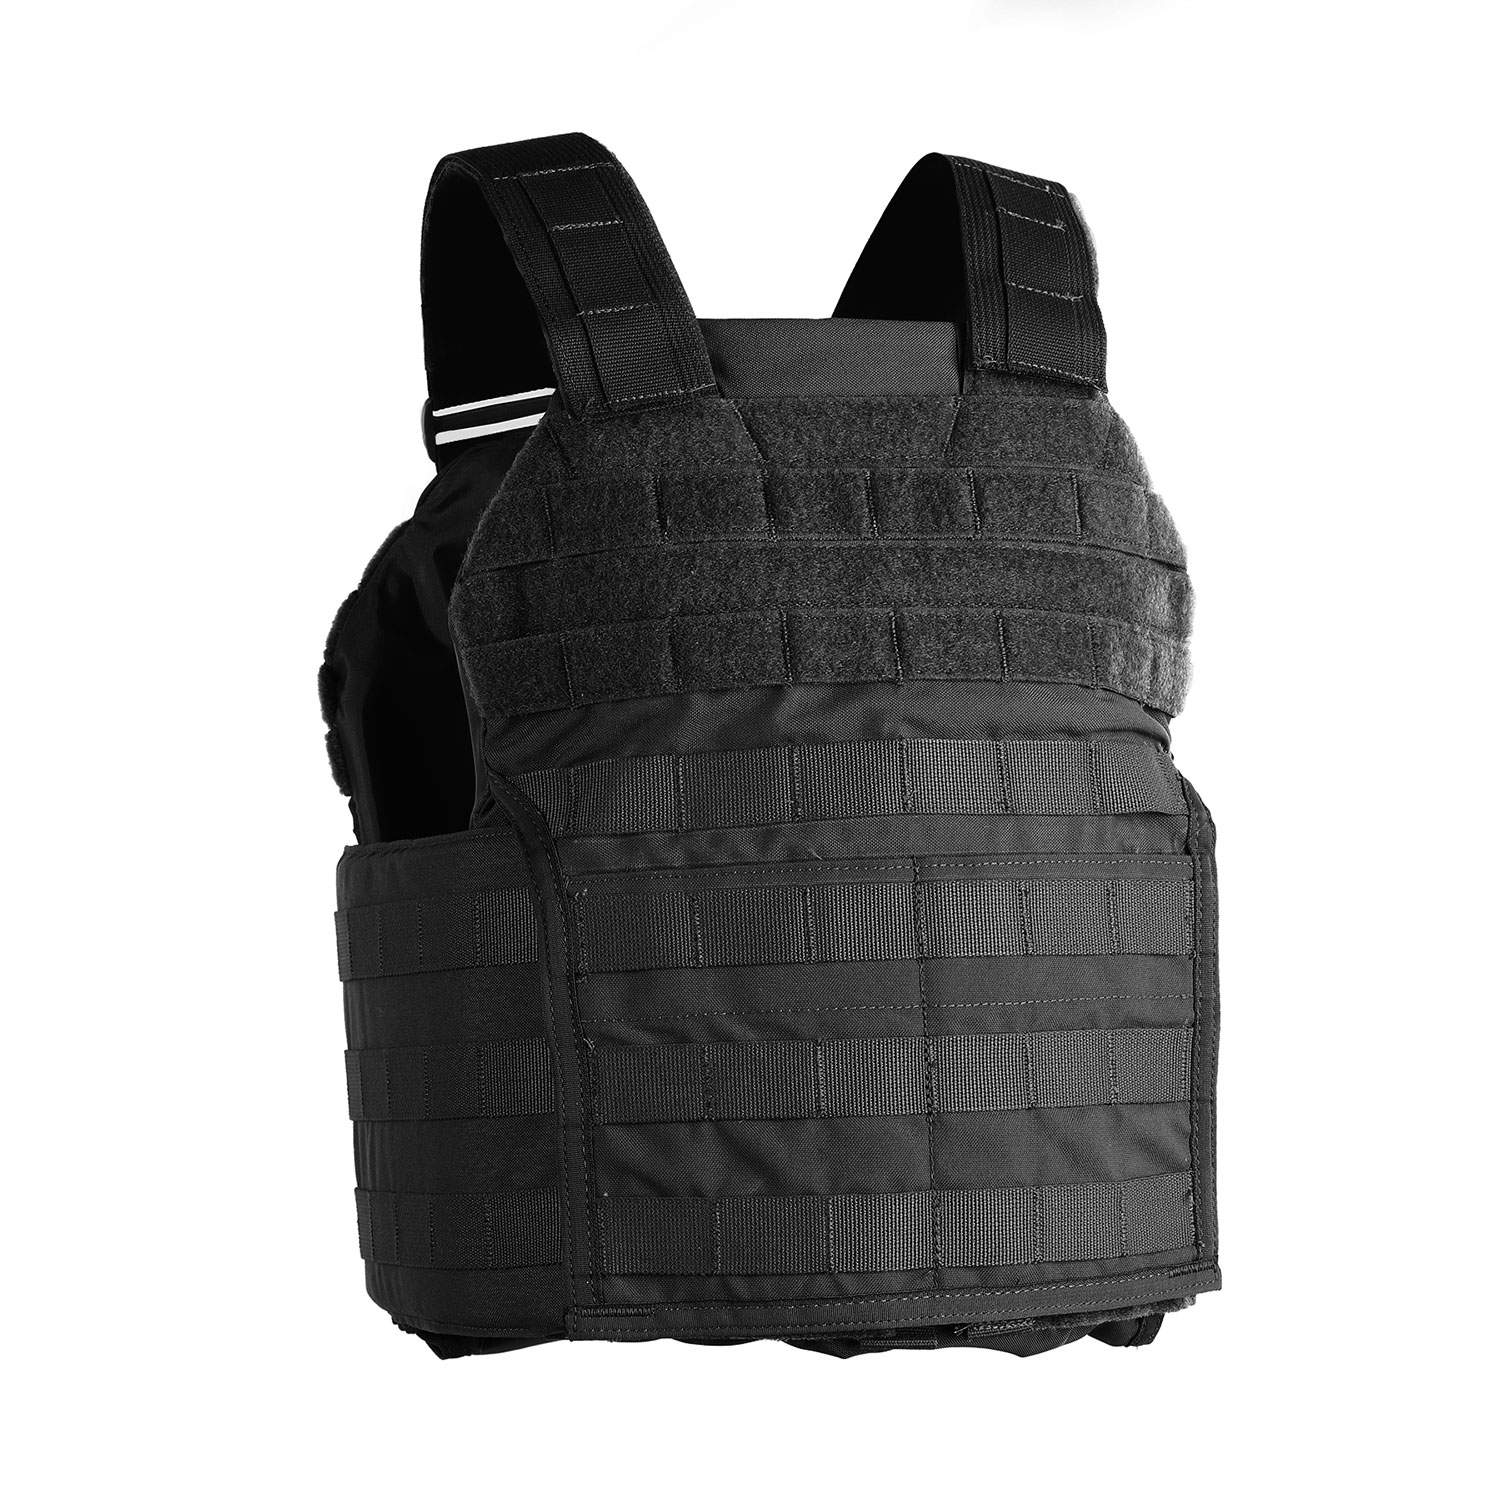 Galls GTAC Plate Carrier With XPIIIA Armor